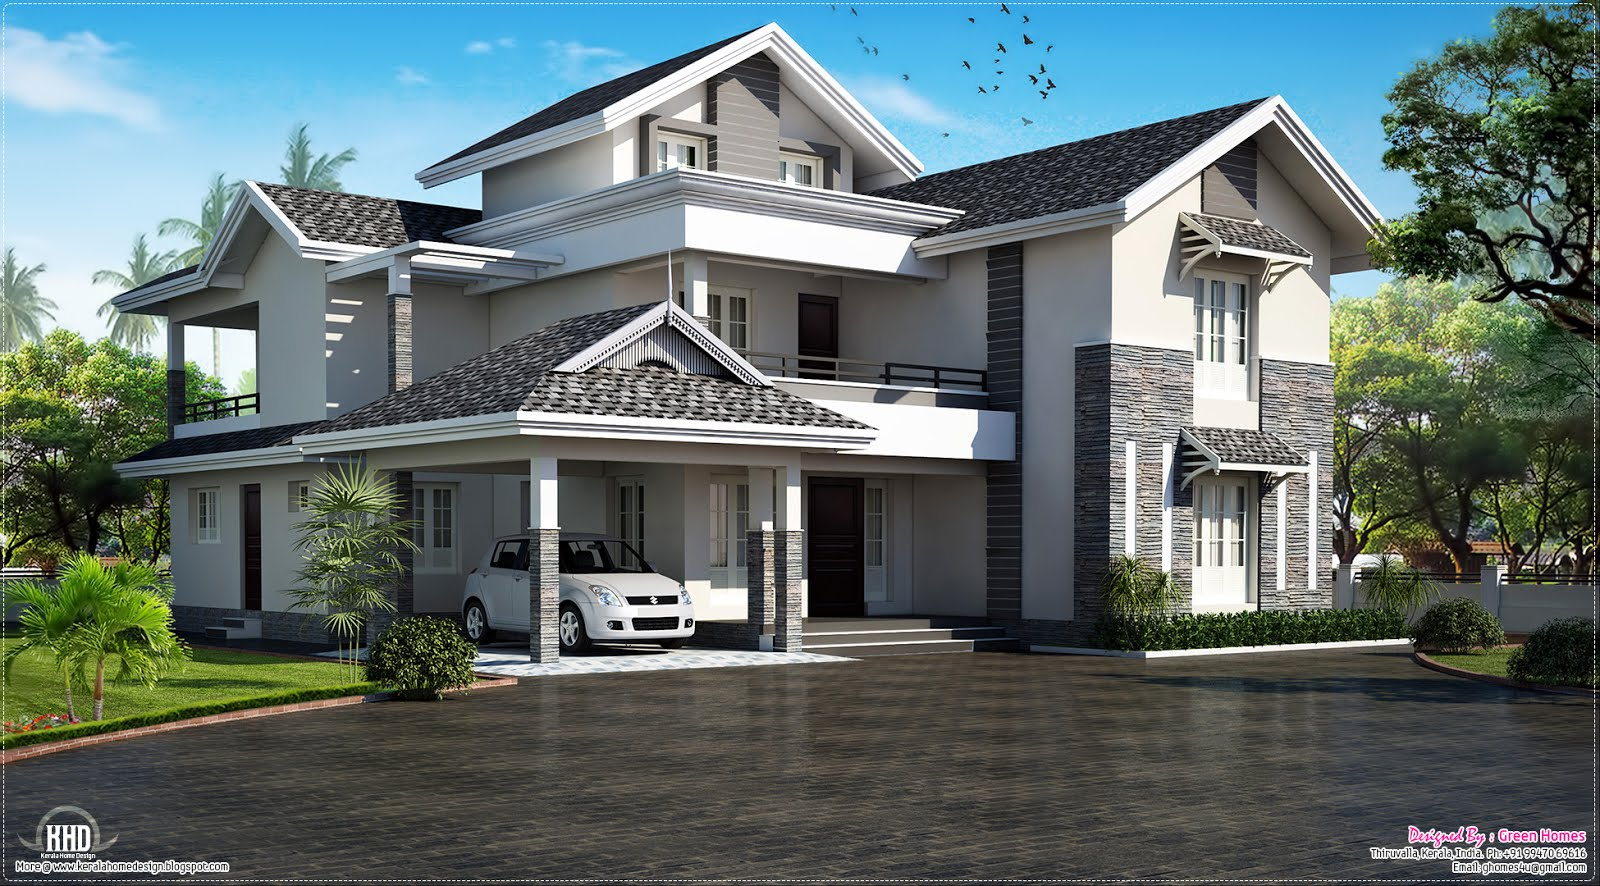 Modern sloping roof house villa design kerala home Modern roof design